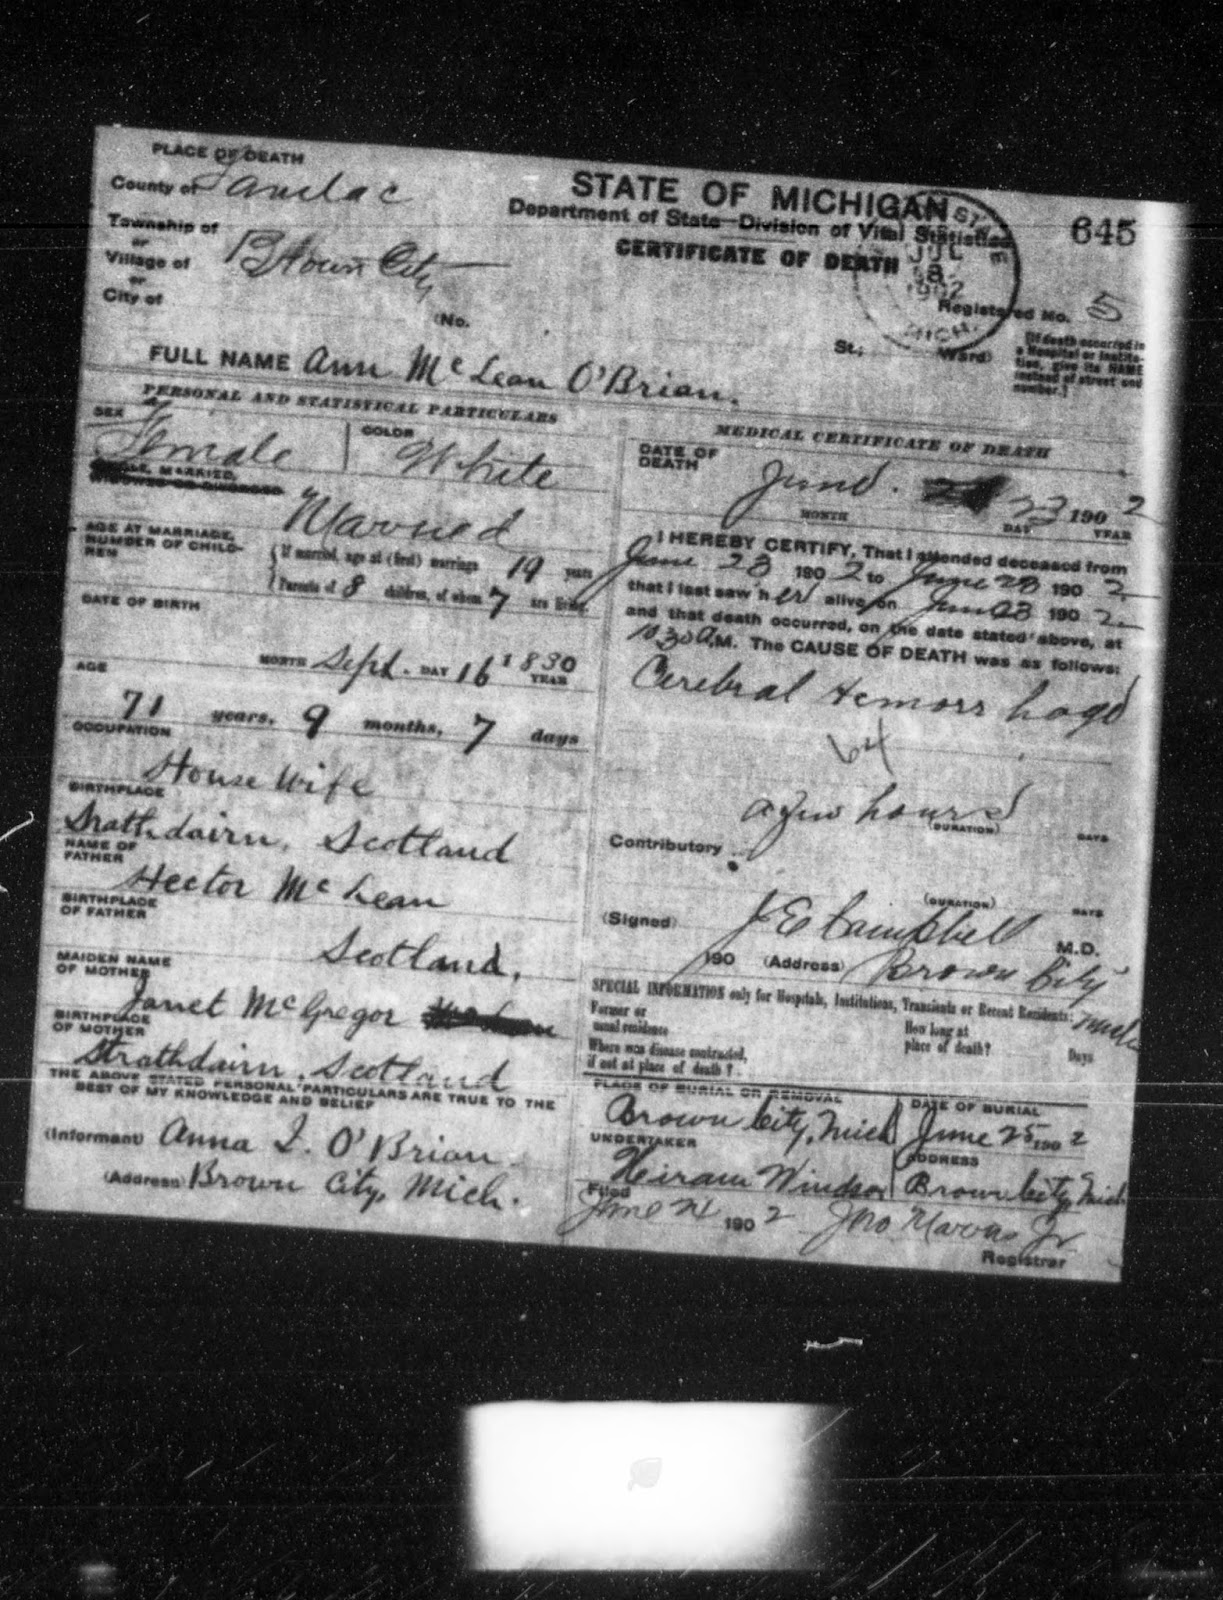 Climbing My Family Tree: Death Certificate for Ann McLean O'Brian